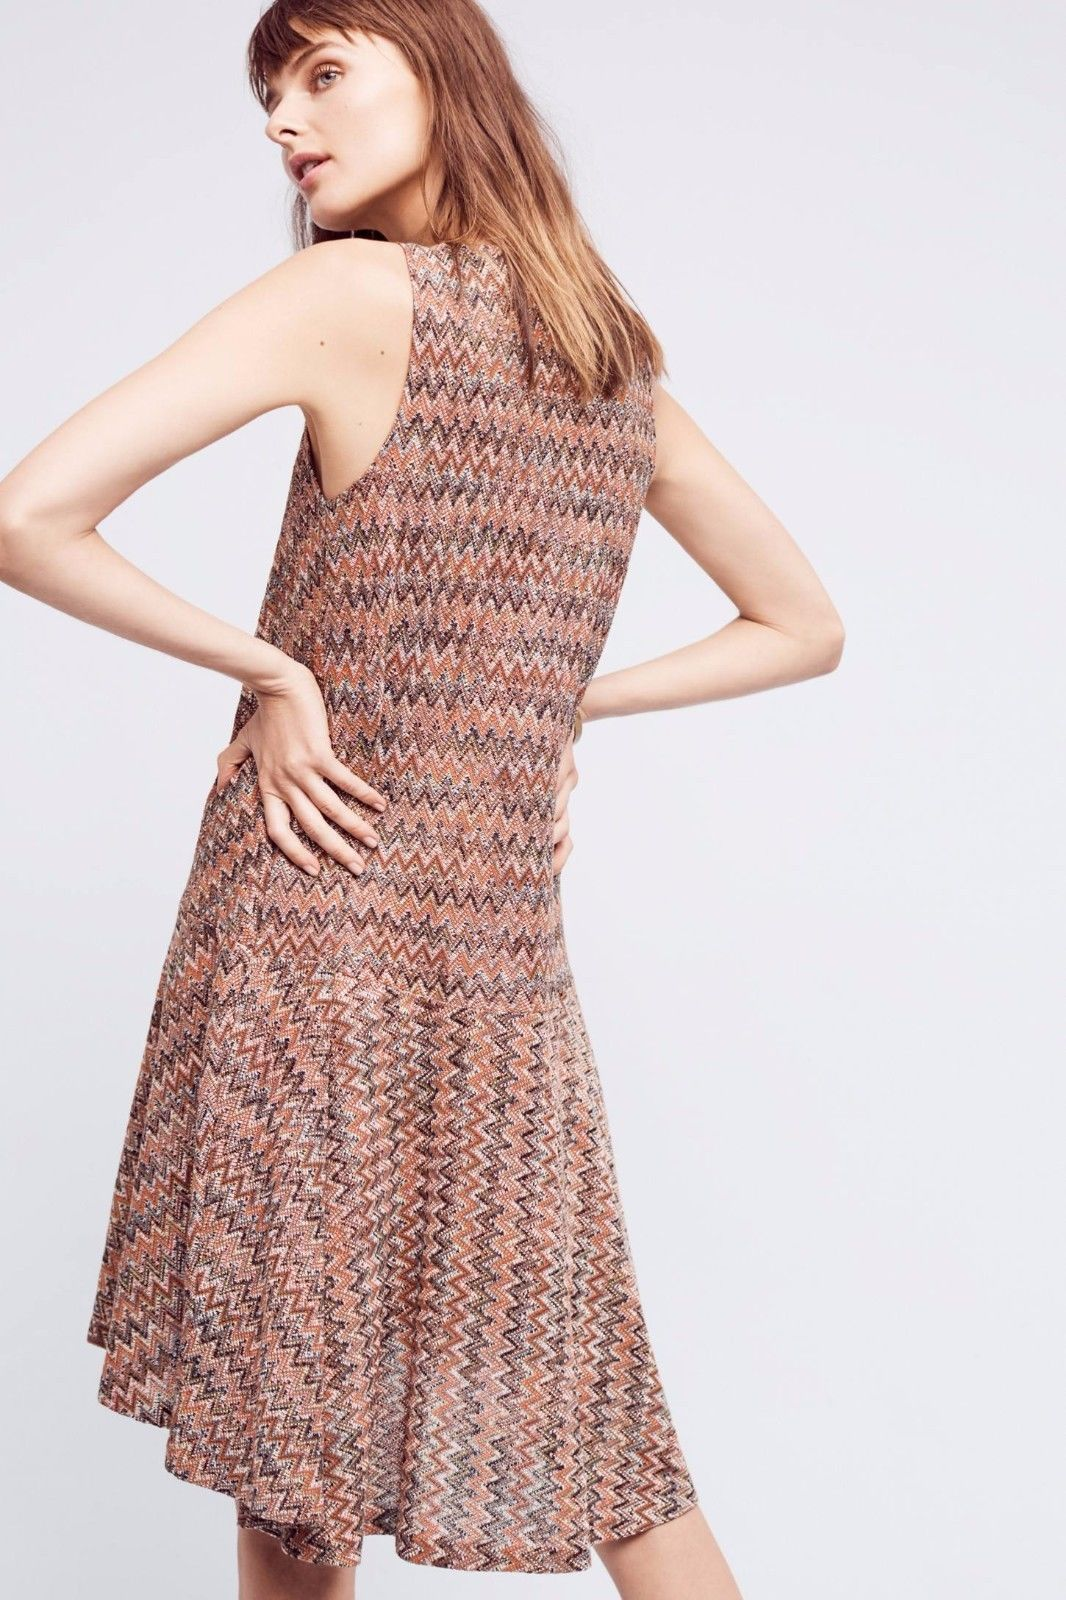 NWT ANTHROPOLOGIE WESTWATER CHEVRON KNIT BROWN DRESS by MAEVE M